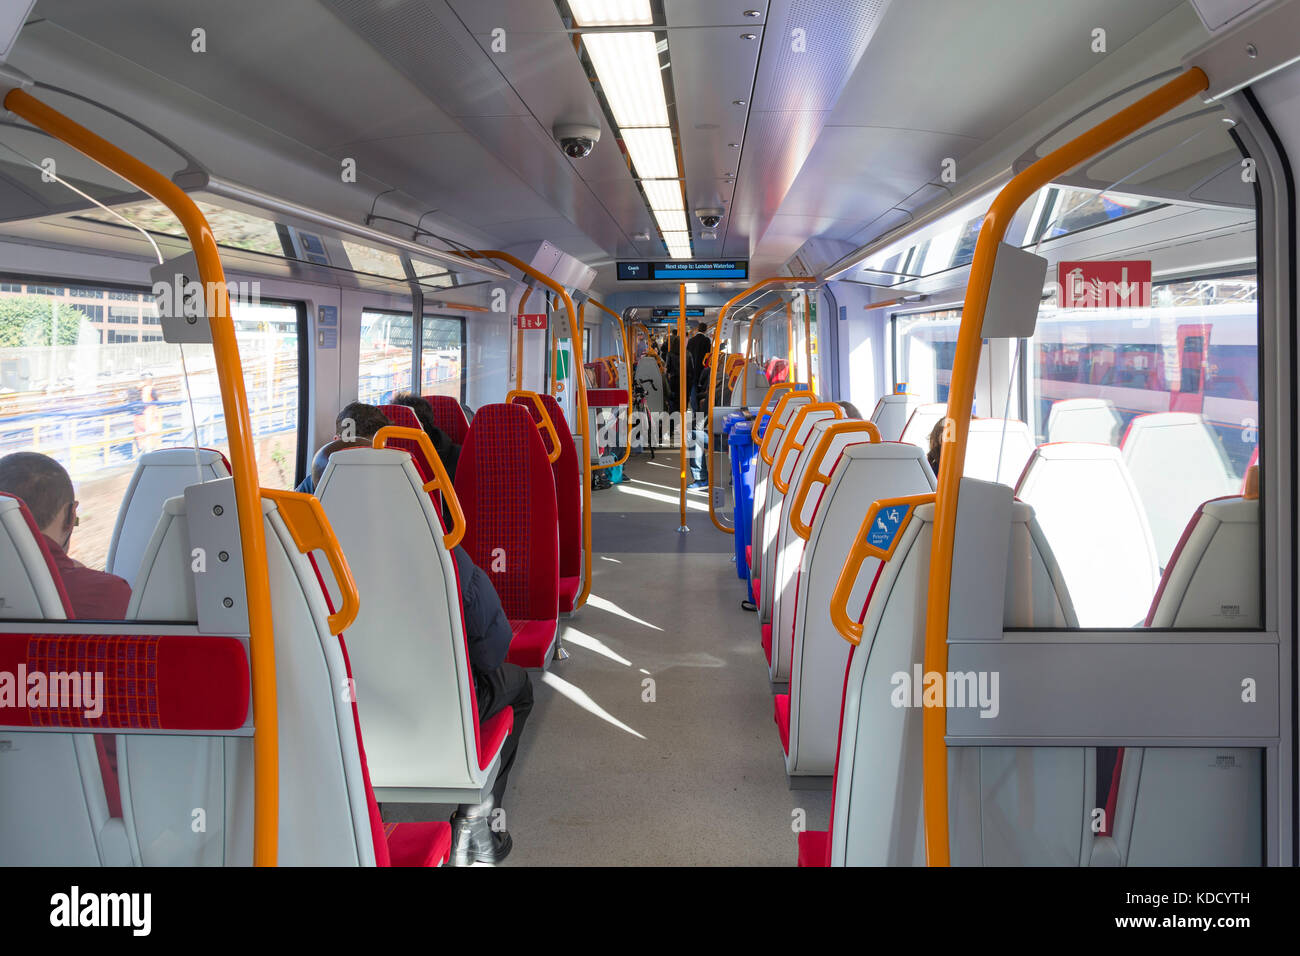 Interior of South West Train, Greater London, England, United Kingdom - Stock Image